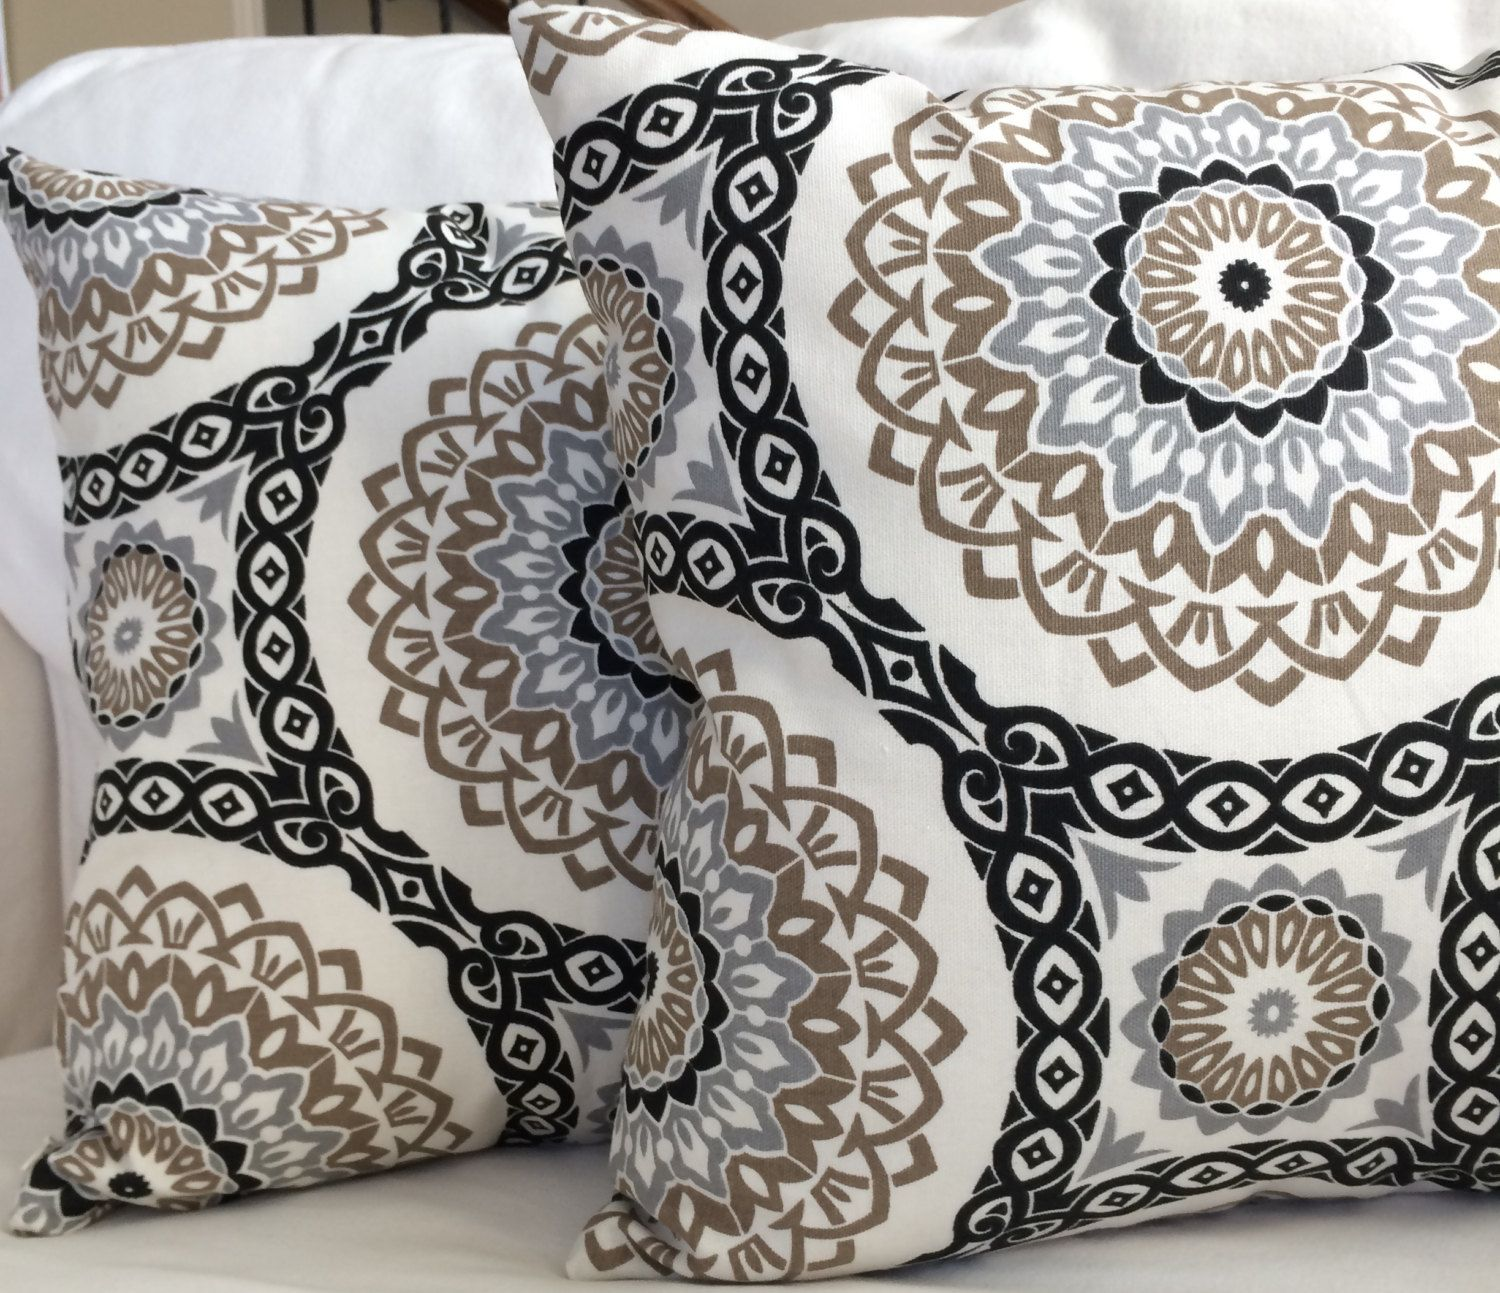 Luxury EMBROIDERED EMBROIDERY Decorative Black//White Cushion Cover 16 X 16/""